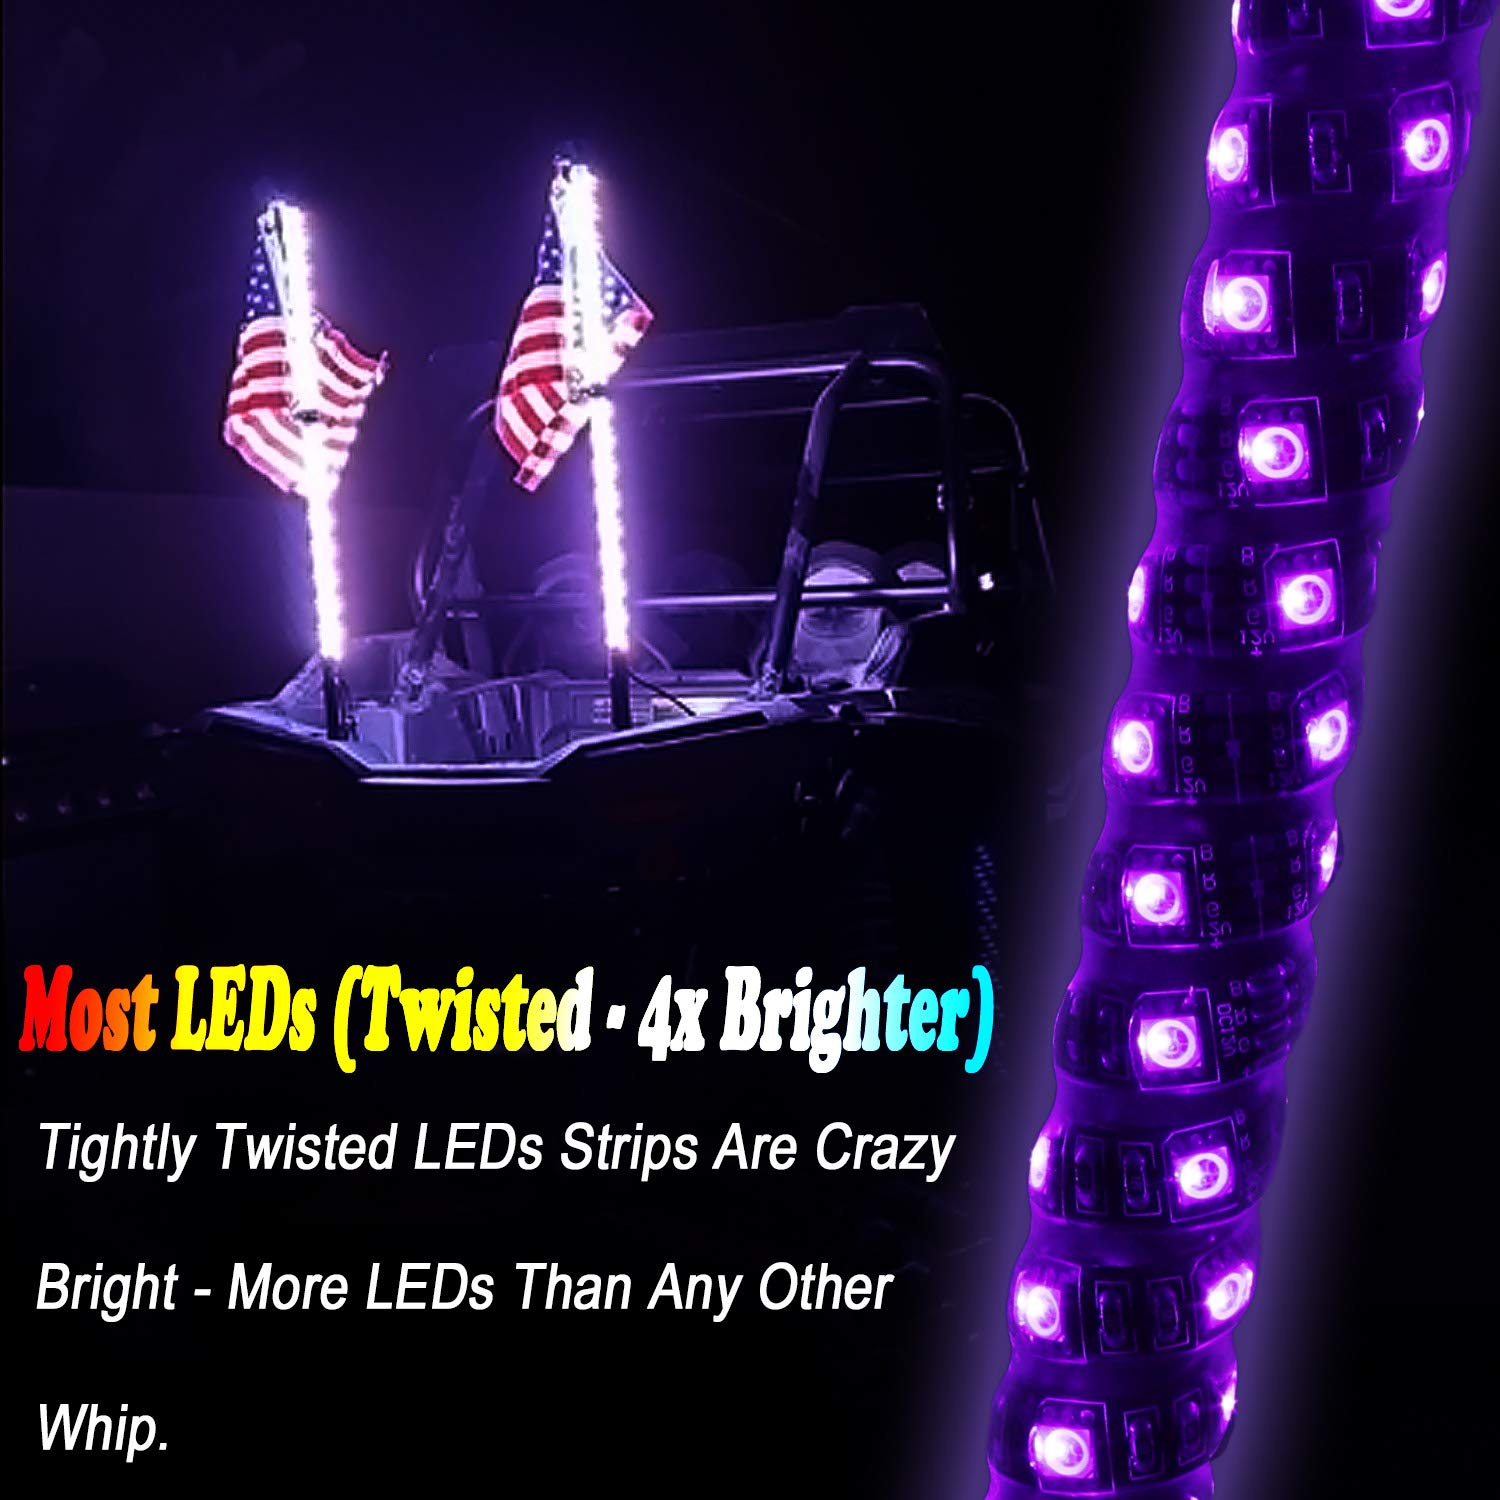 2pc 4ft Spiral LED Whip Lights w//Flag Lighted Antenna Whips Wireless Remote Accessories for ATV Polaris RZR 4 Wheeler 21 Modes 20 Colors Weatherproof